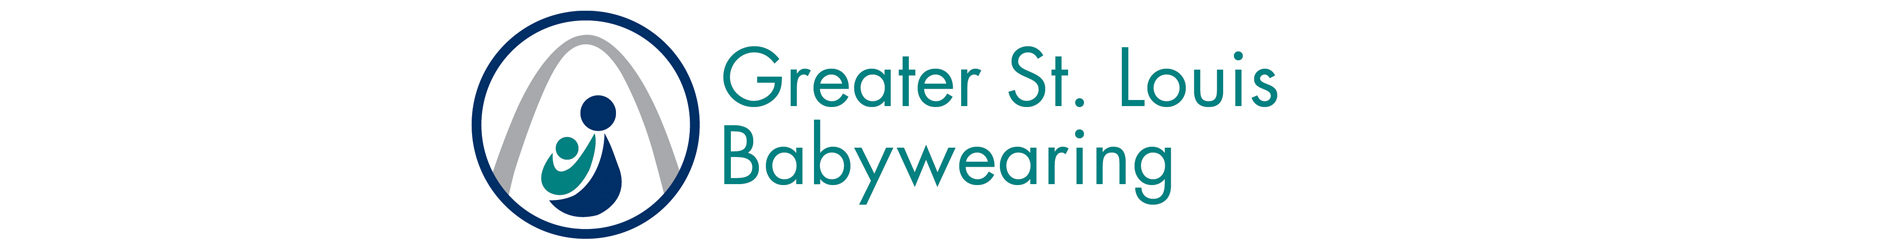 Greater St. Louis Babywearing